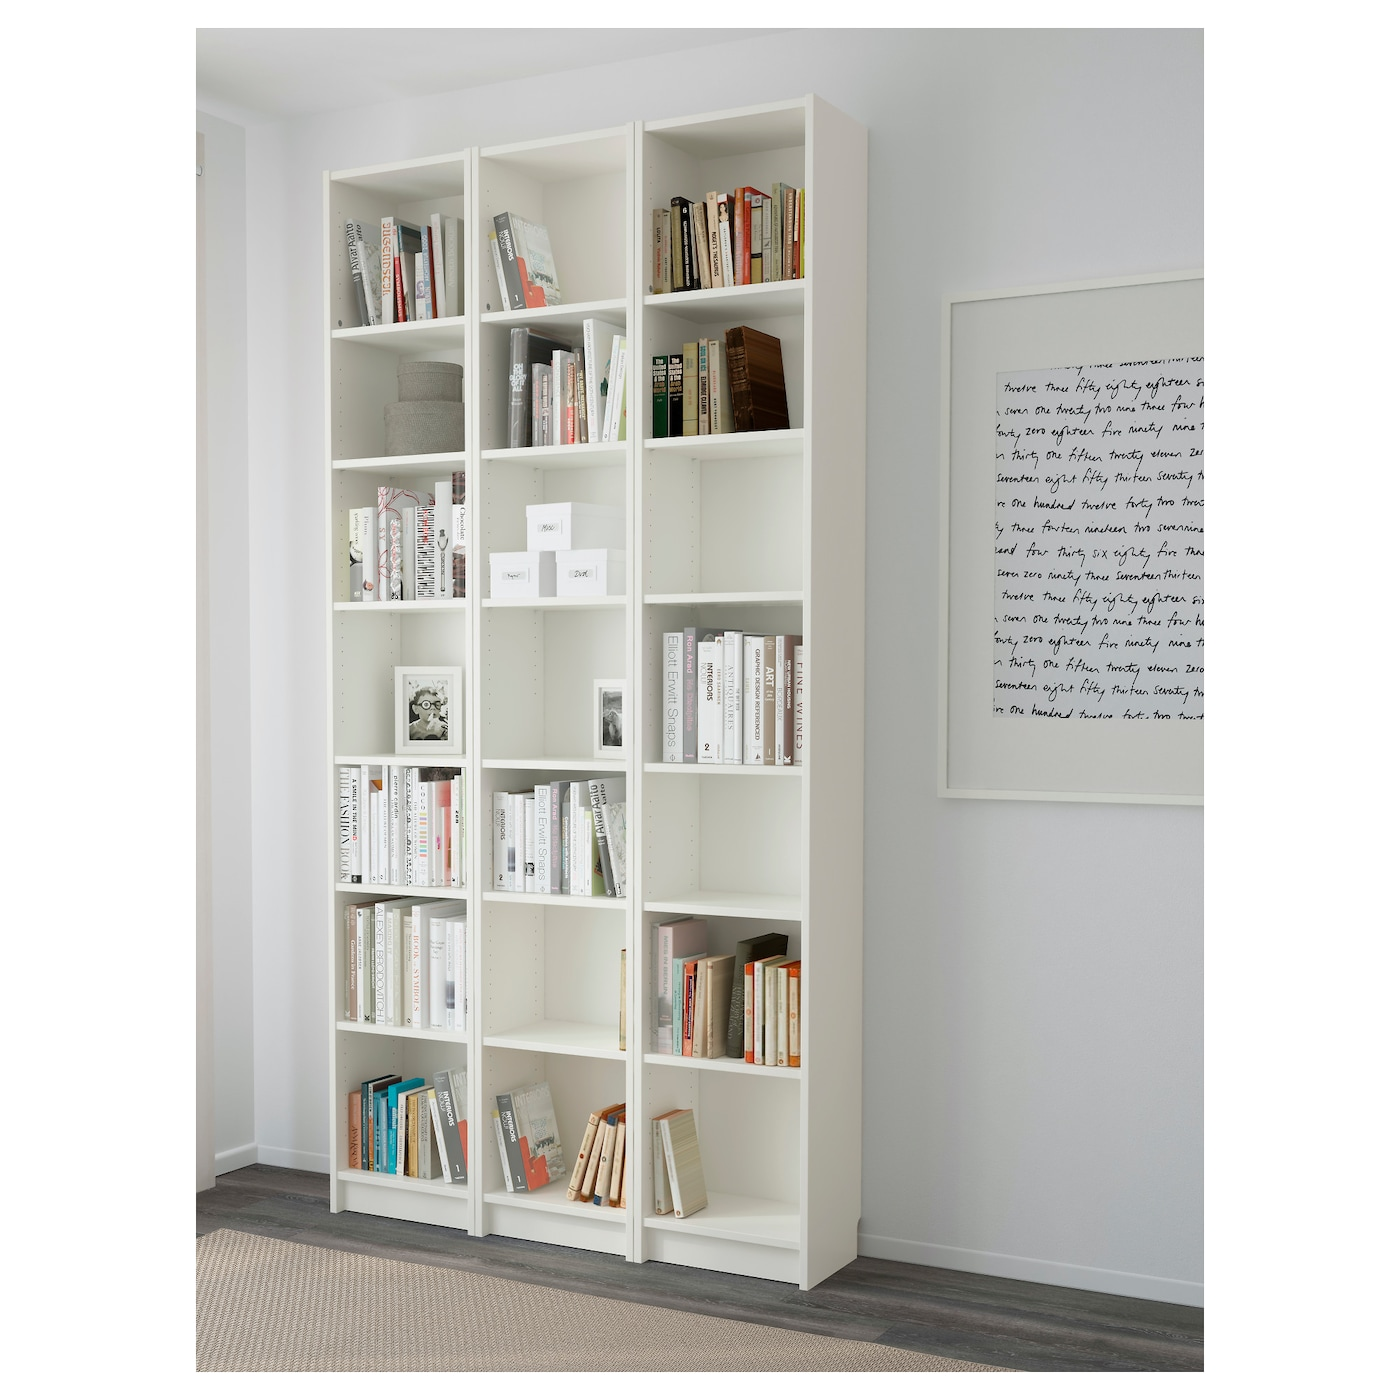 Image of: Billy Bookcase White 47 1 4x11x93 1 4 Ikea